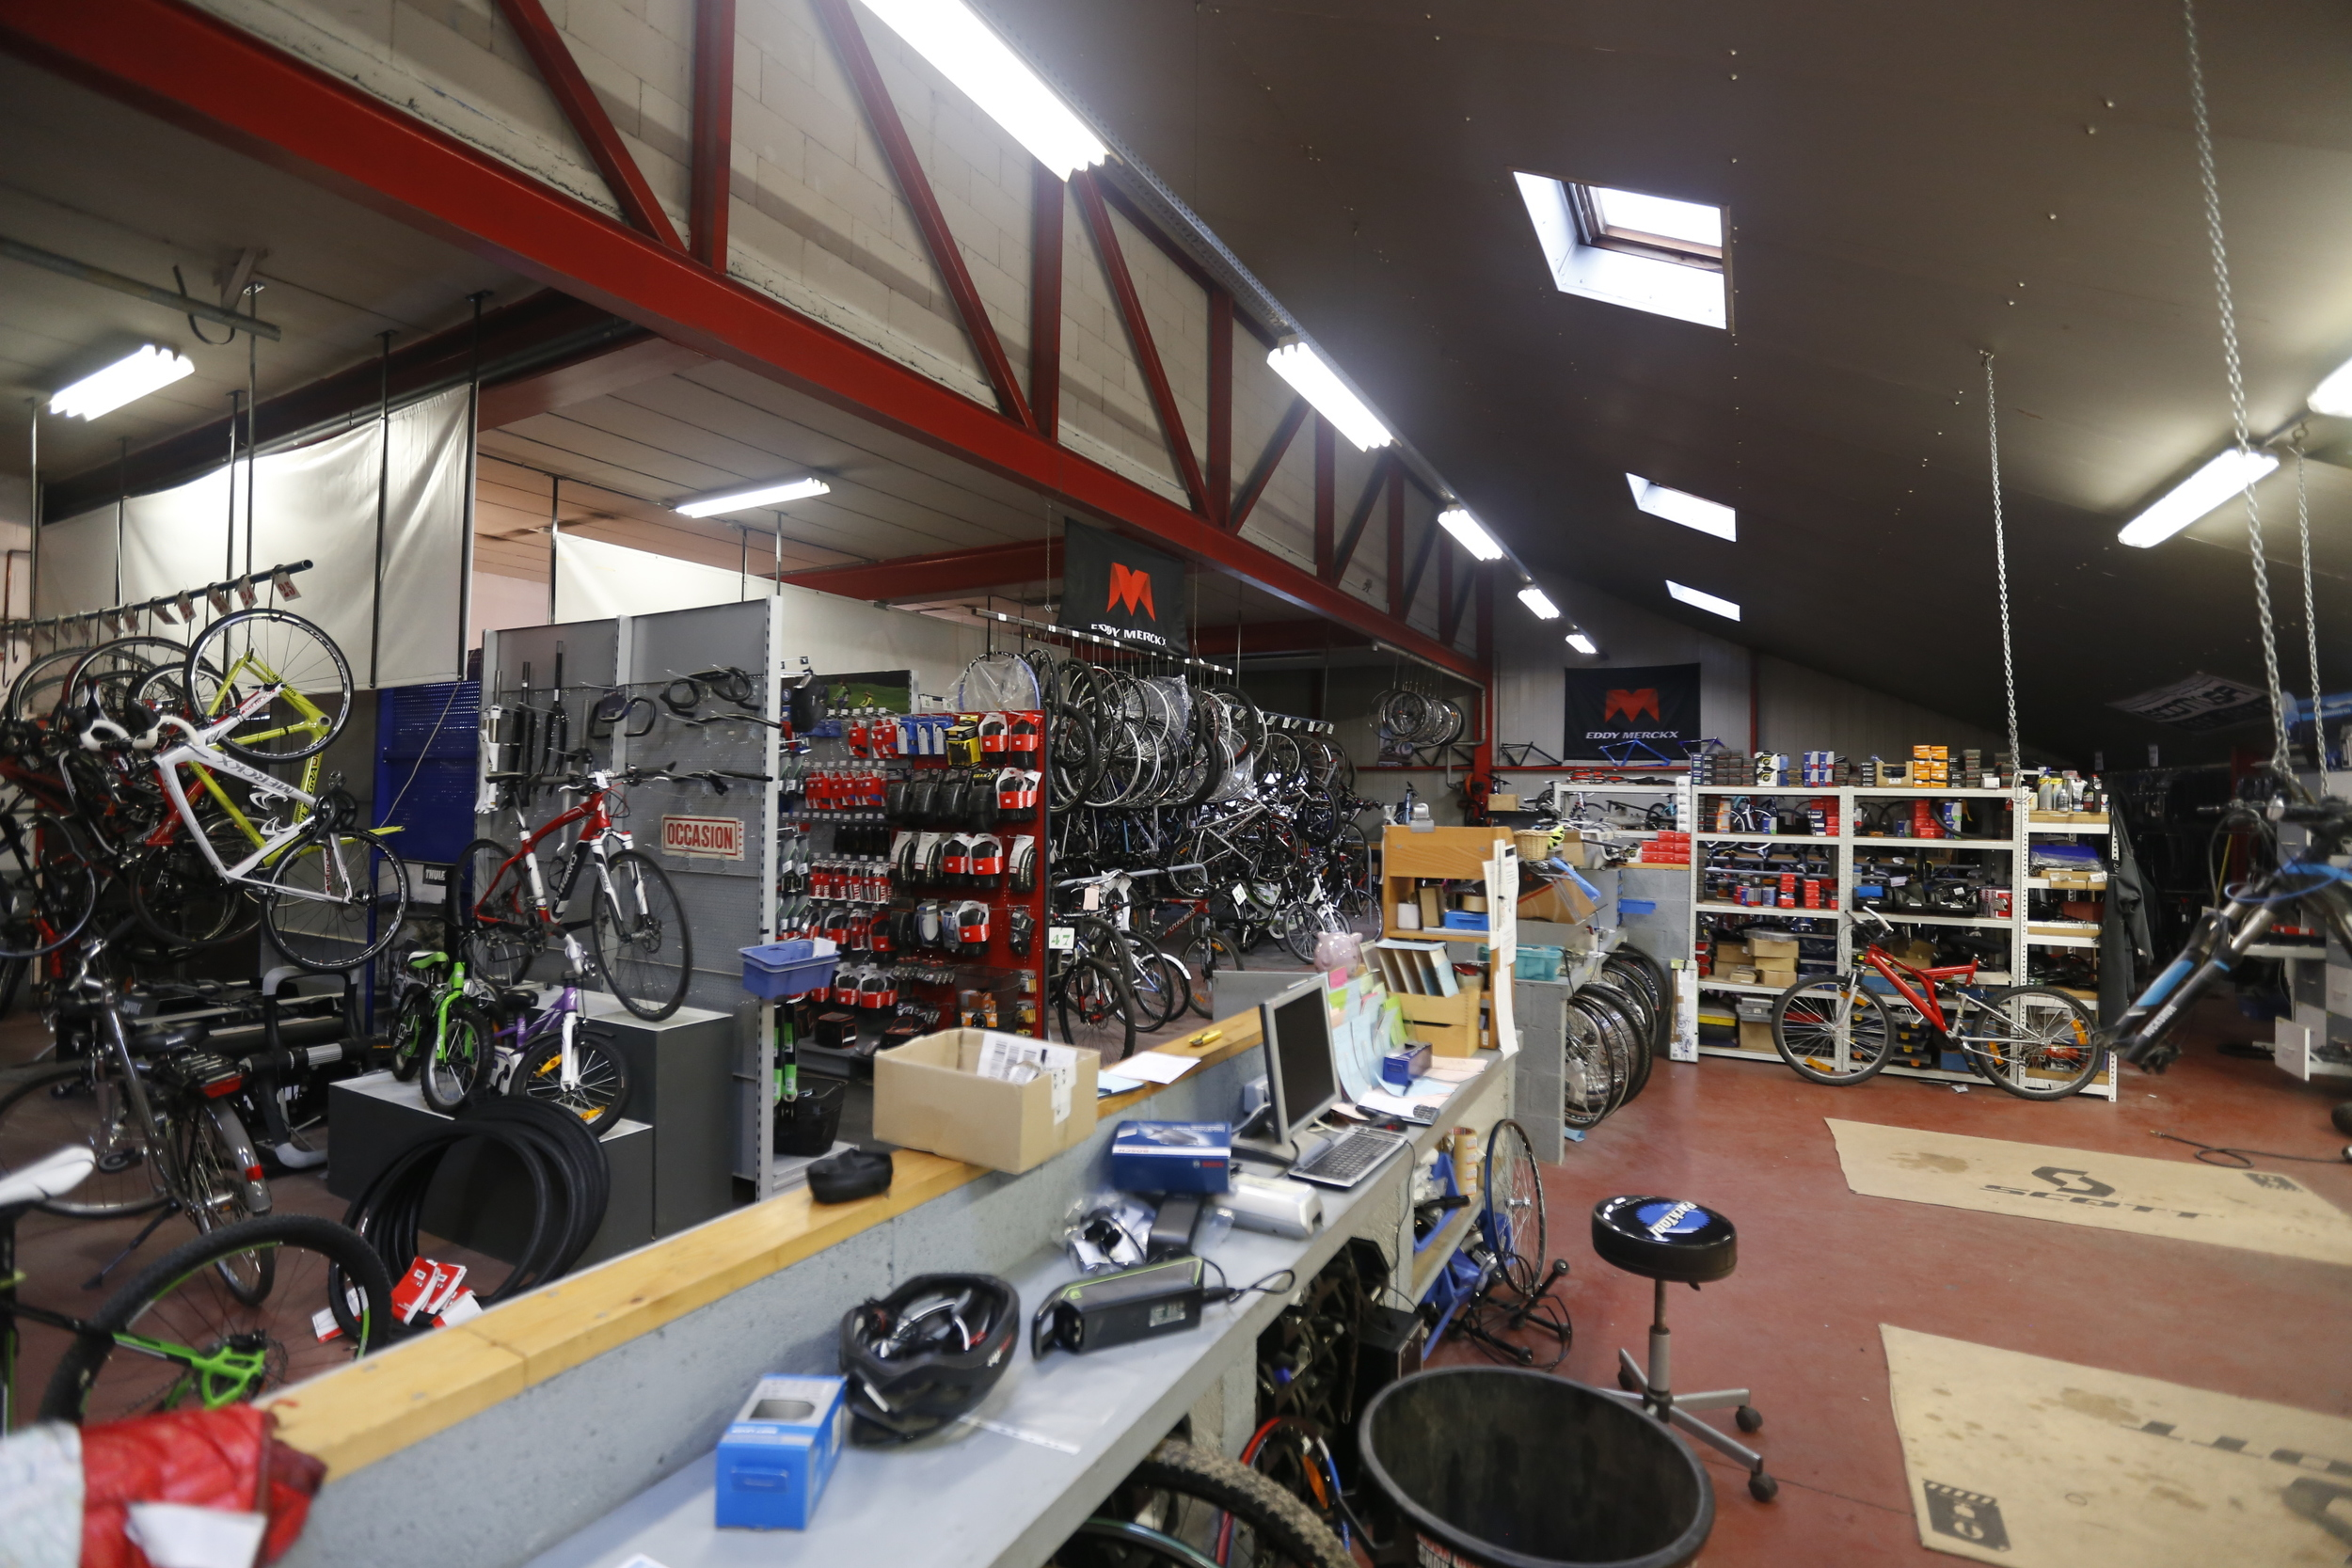 bike shop, bike store, cycle shop, cycle store, cycle gear, bikes, cycles, ride, cycling gear, spokes, ride, travel, bicycle touring blog